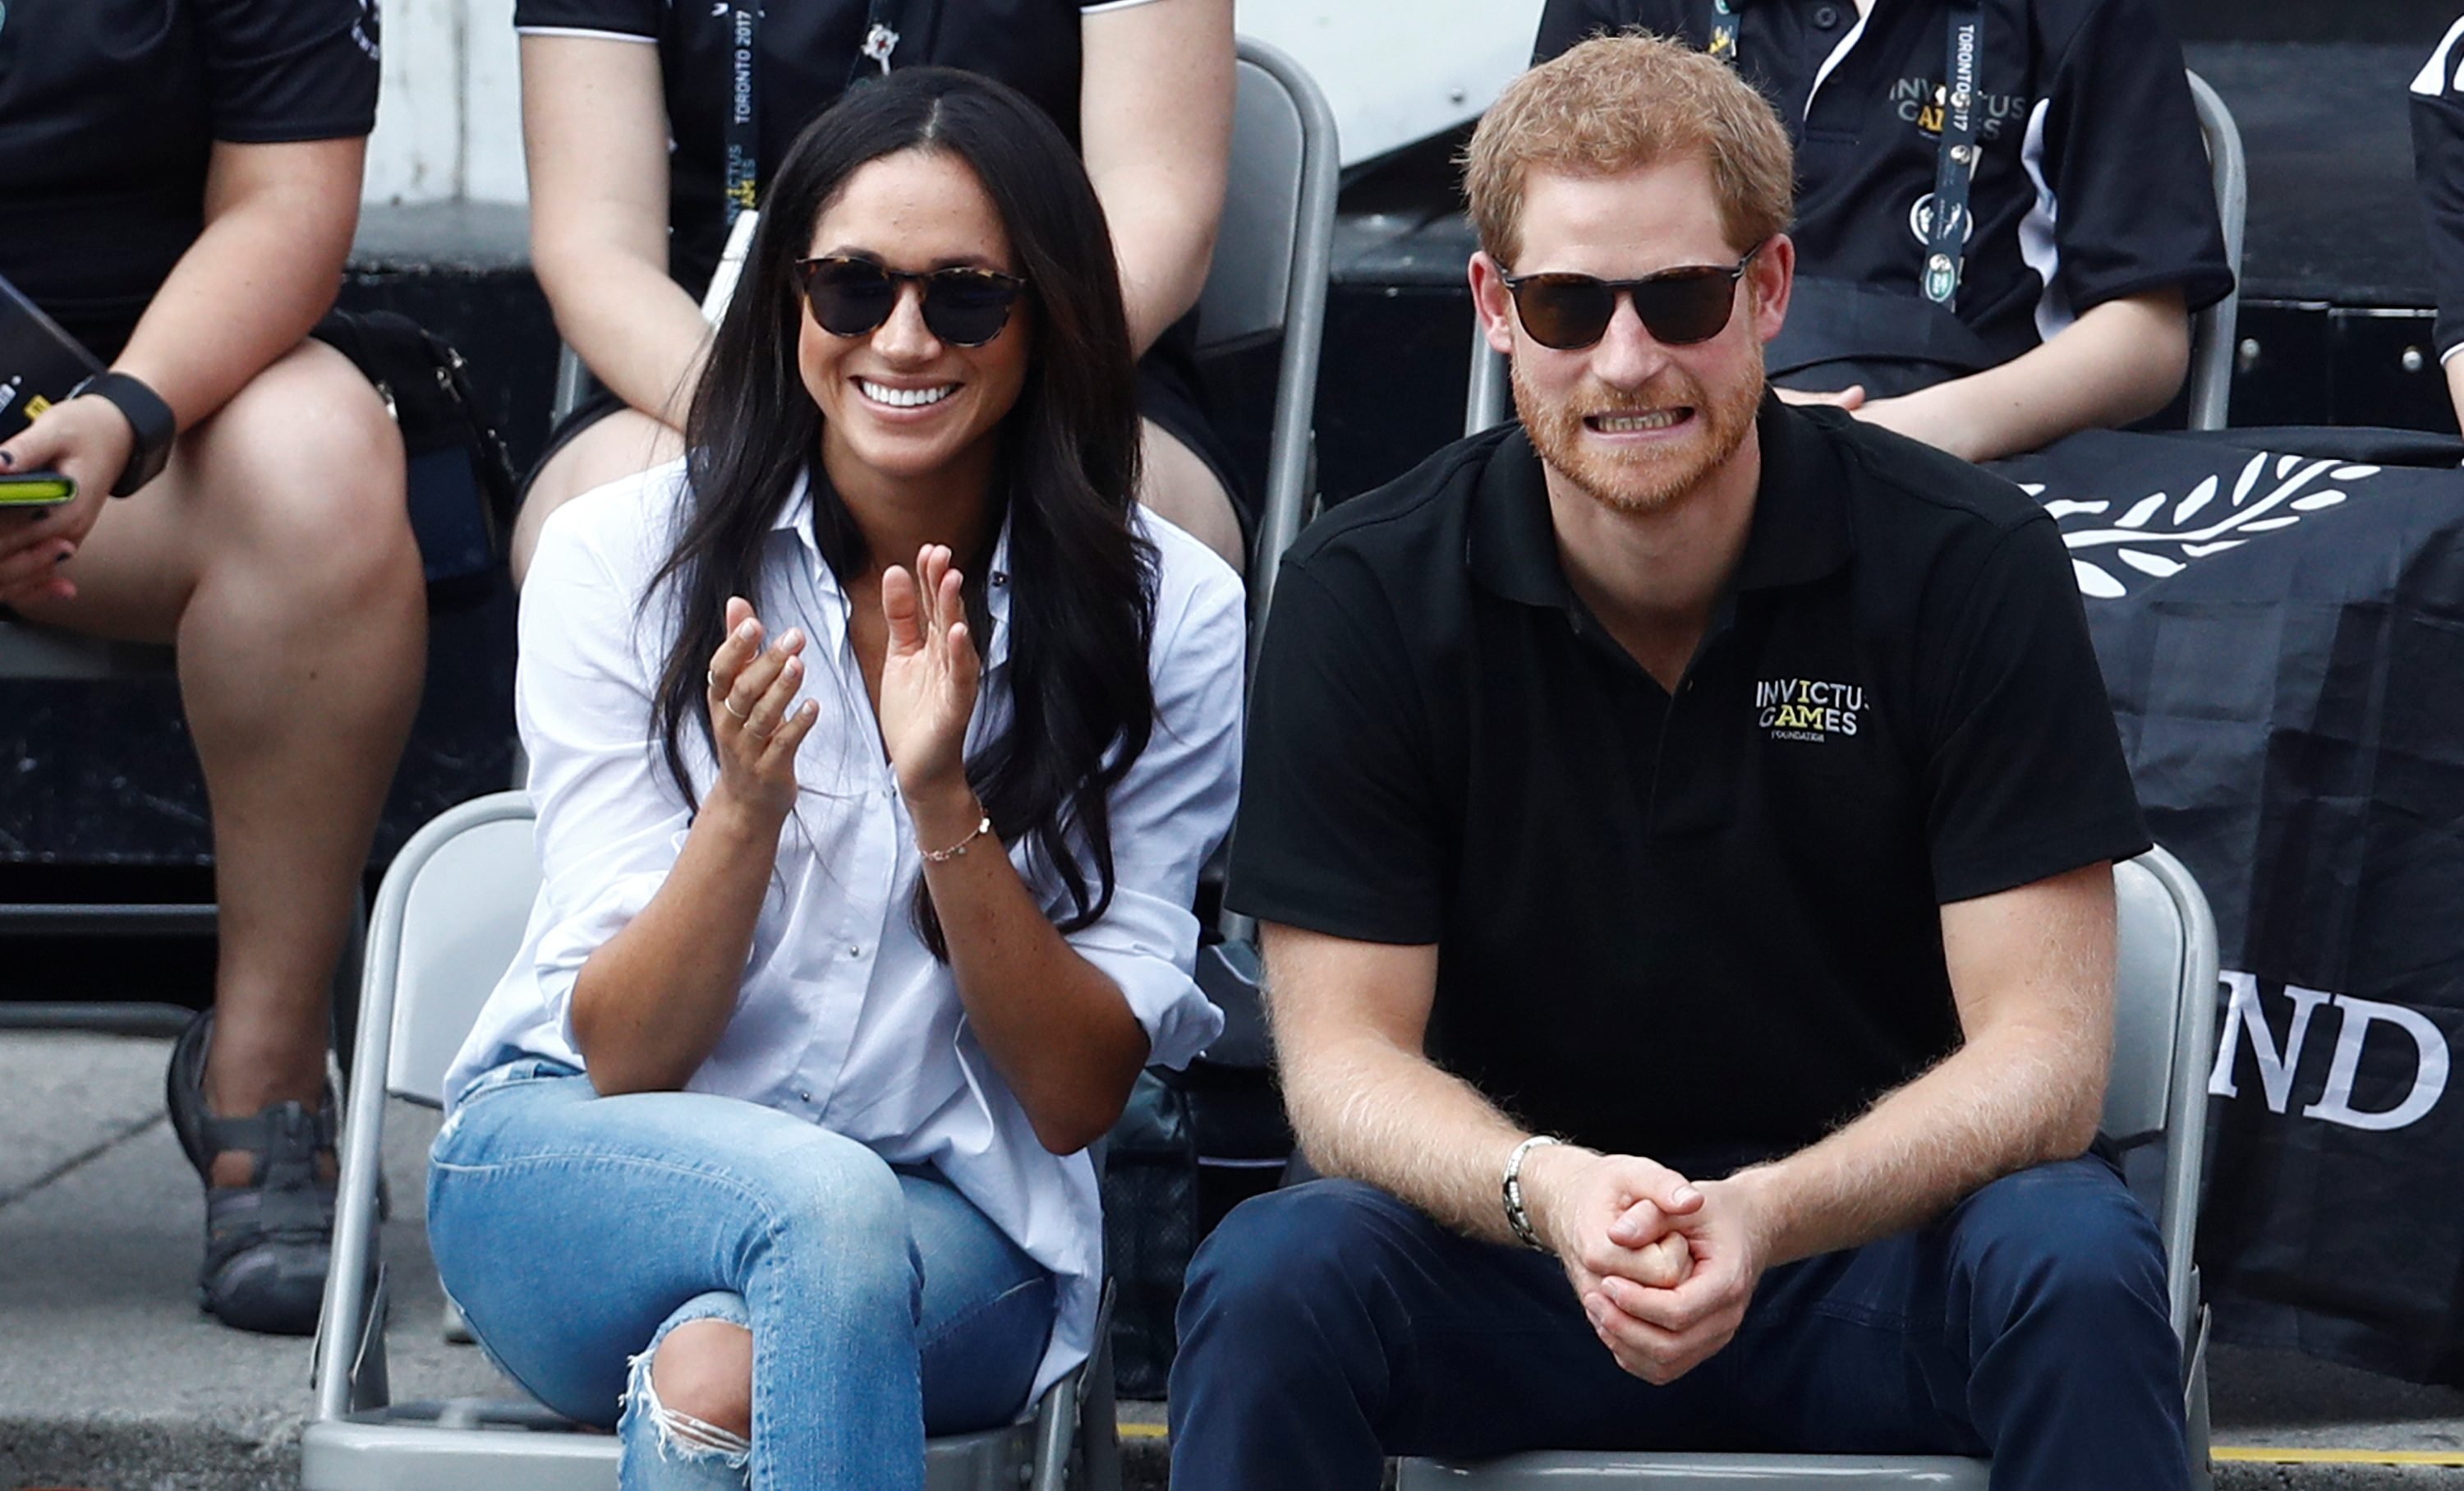 Britain's Prince Harry and his girlfriend actress Meghan Markle watch the wheelchair tennis event during the Invictus Games in Toronto, Ontario, Canada September 25, 2017. REUTERS/Mark Blinch - RC1C33DB3580